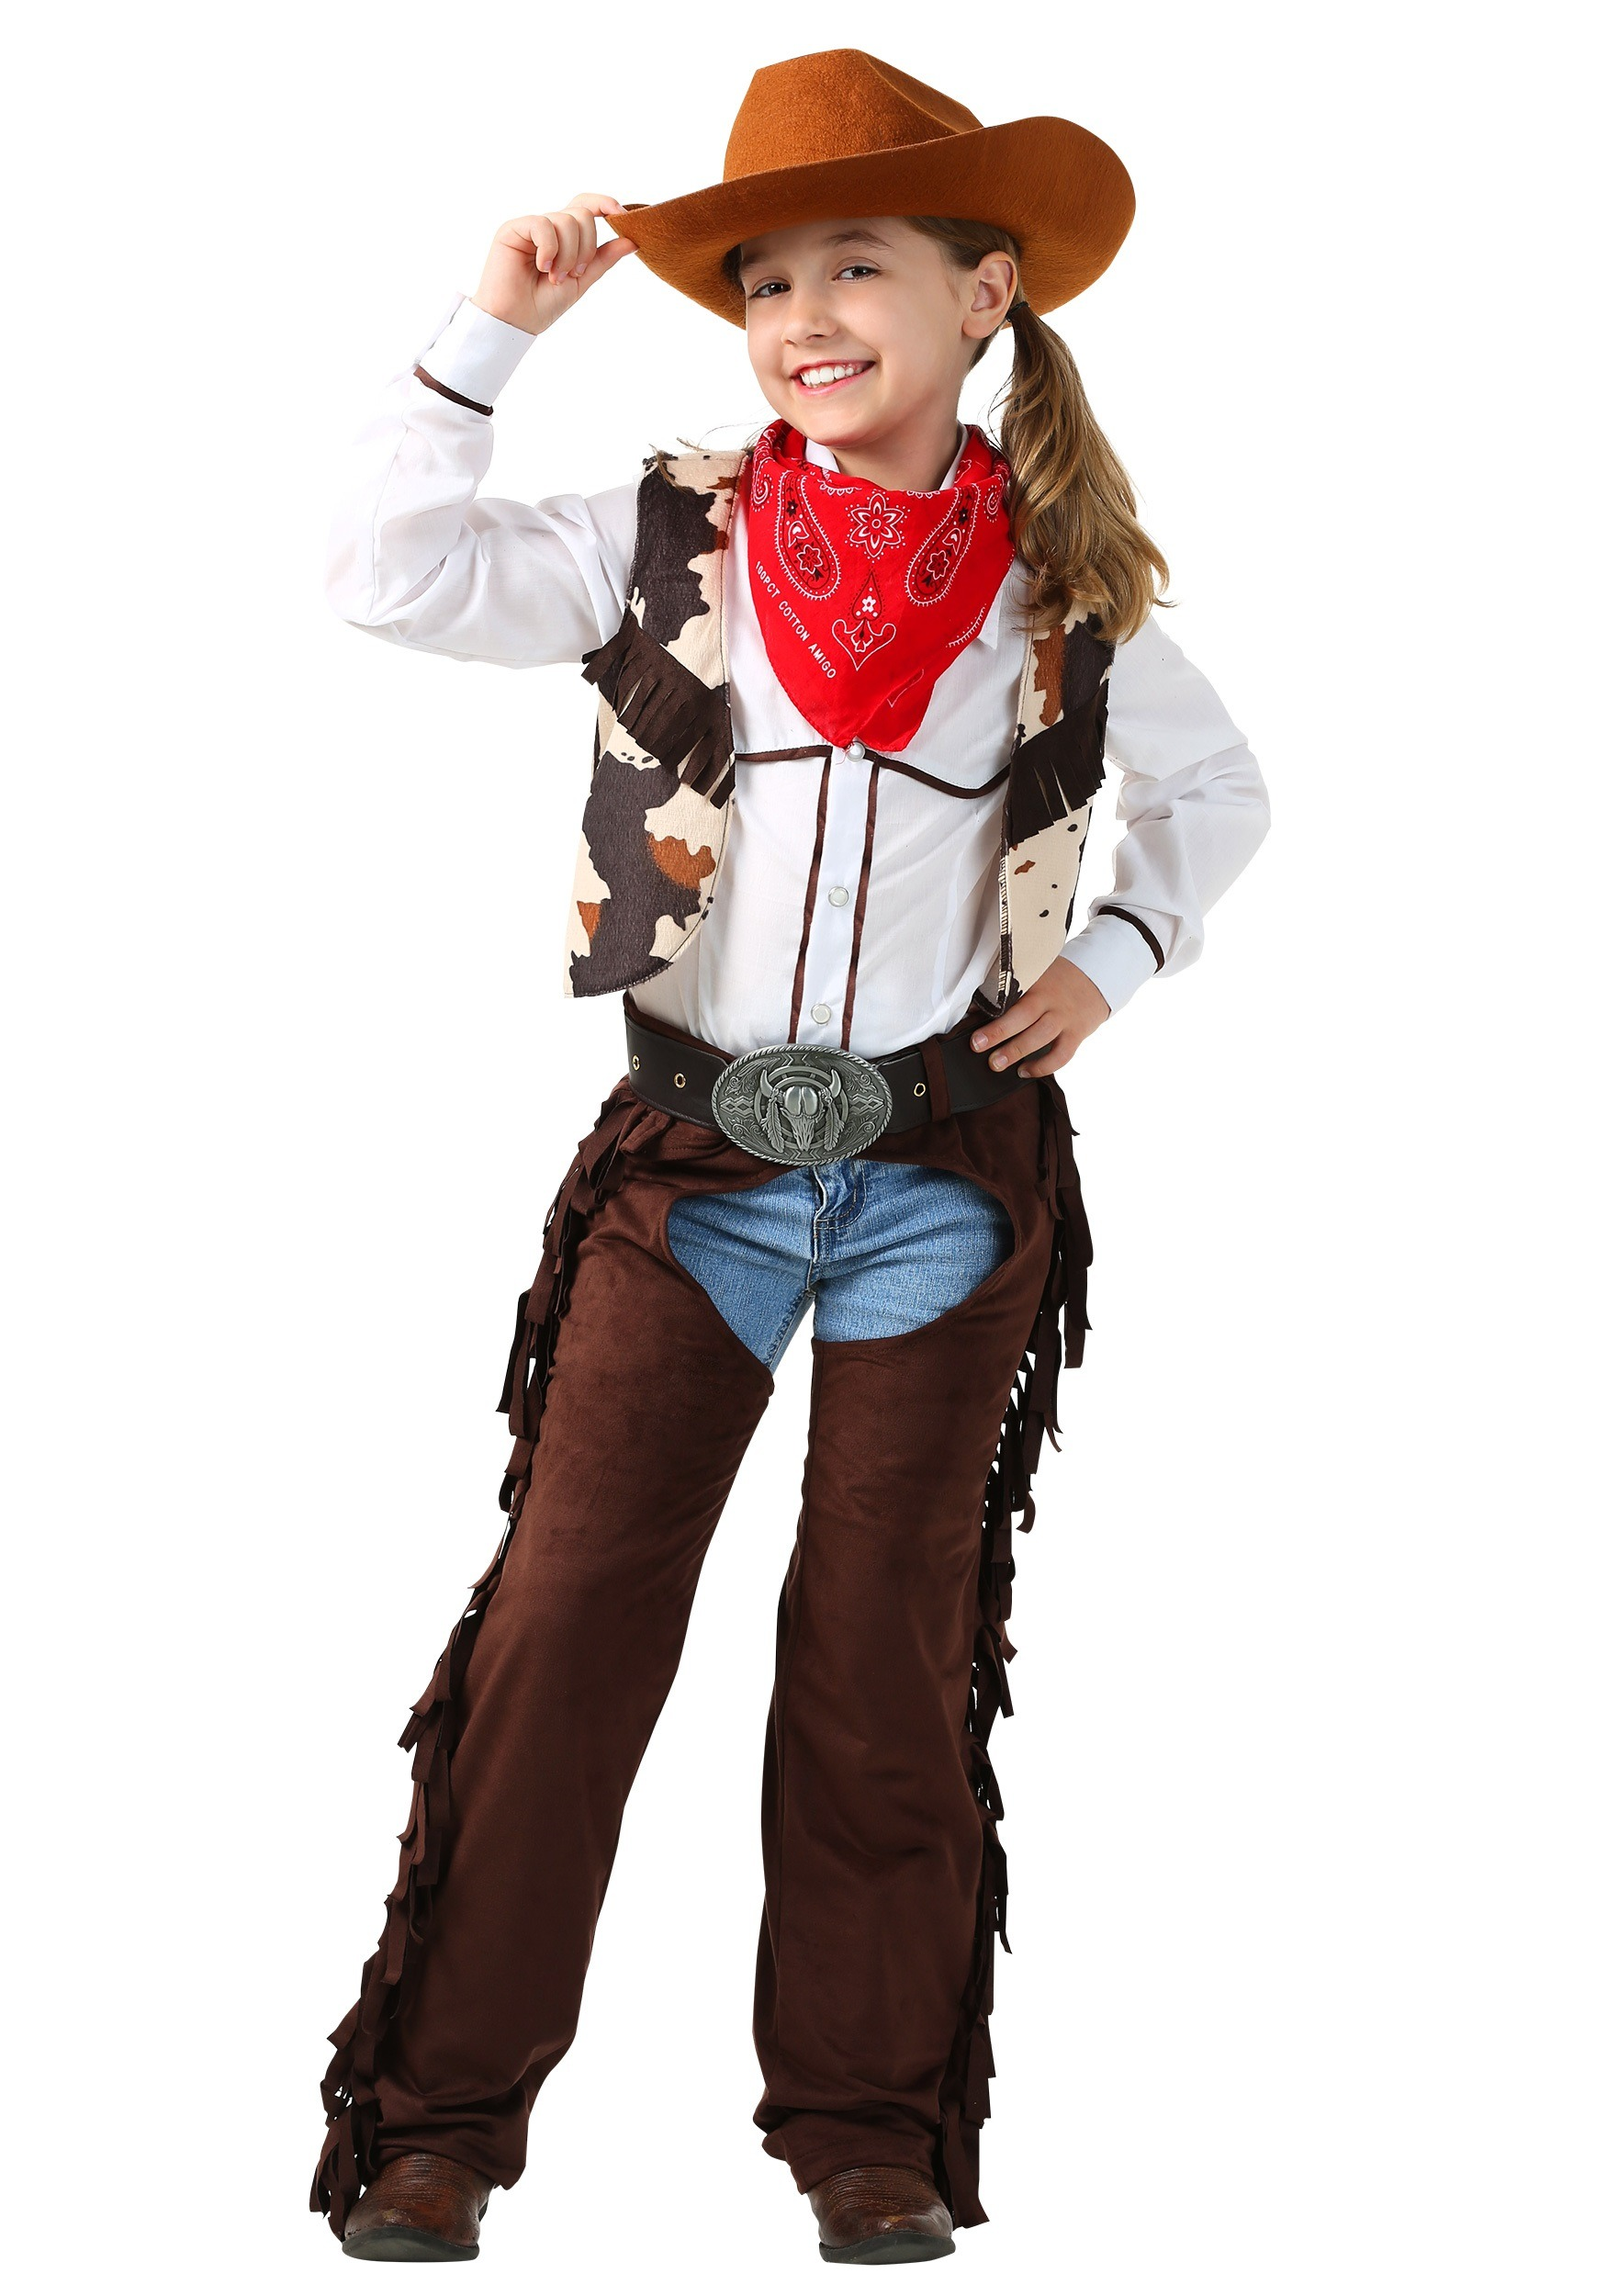 Cowboy costume for girls kids - photo#23  sc 1 st  Animalia Life & Cowboy Costume For Girls Kids